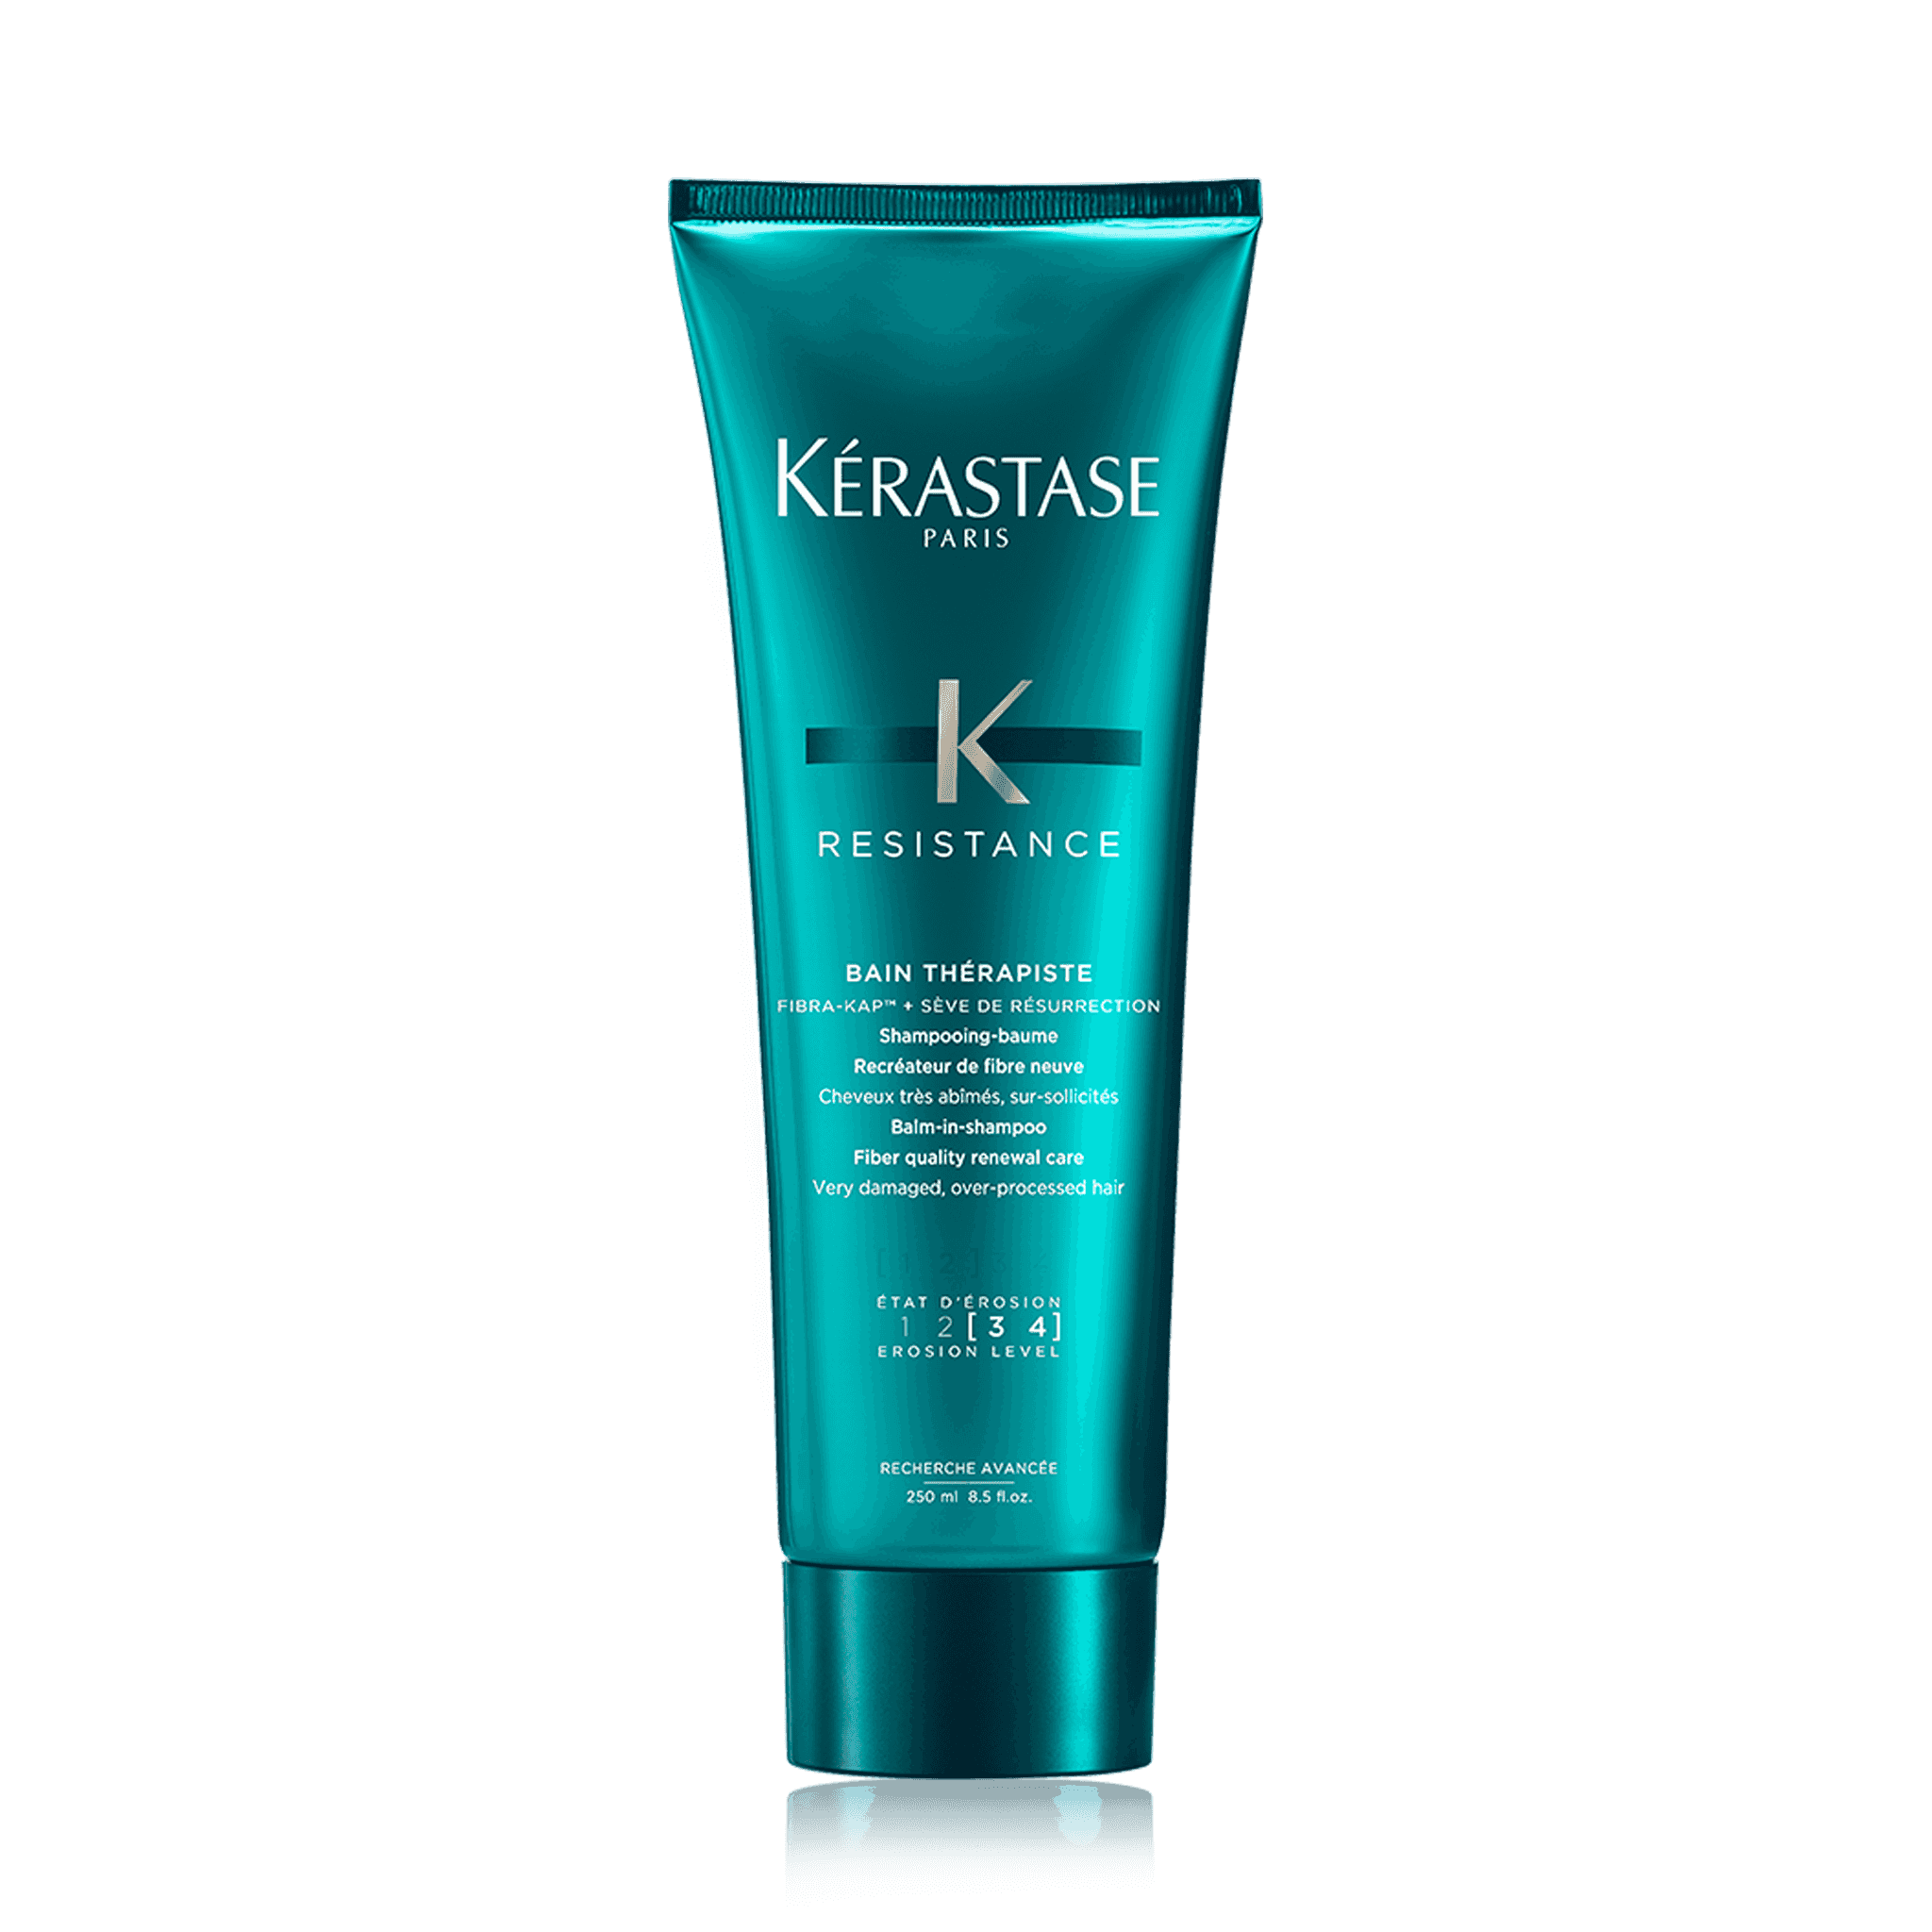 Bain Therapiste Shampoo For Very Damaged Over Processed Hair